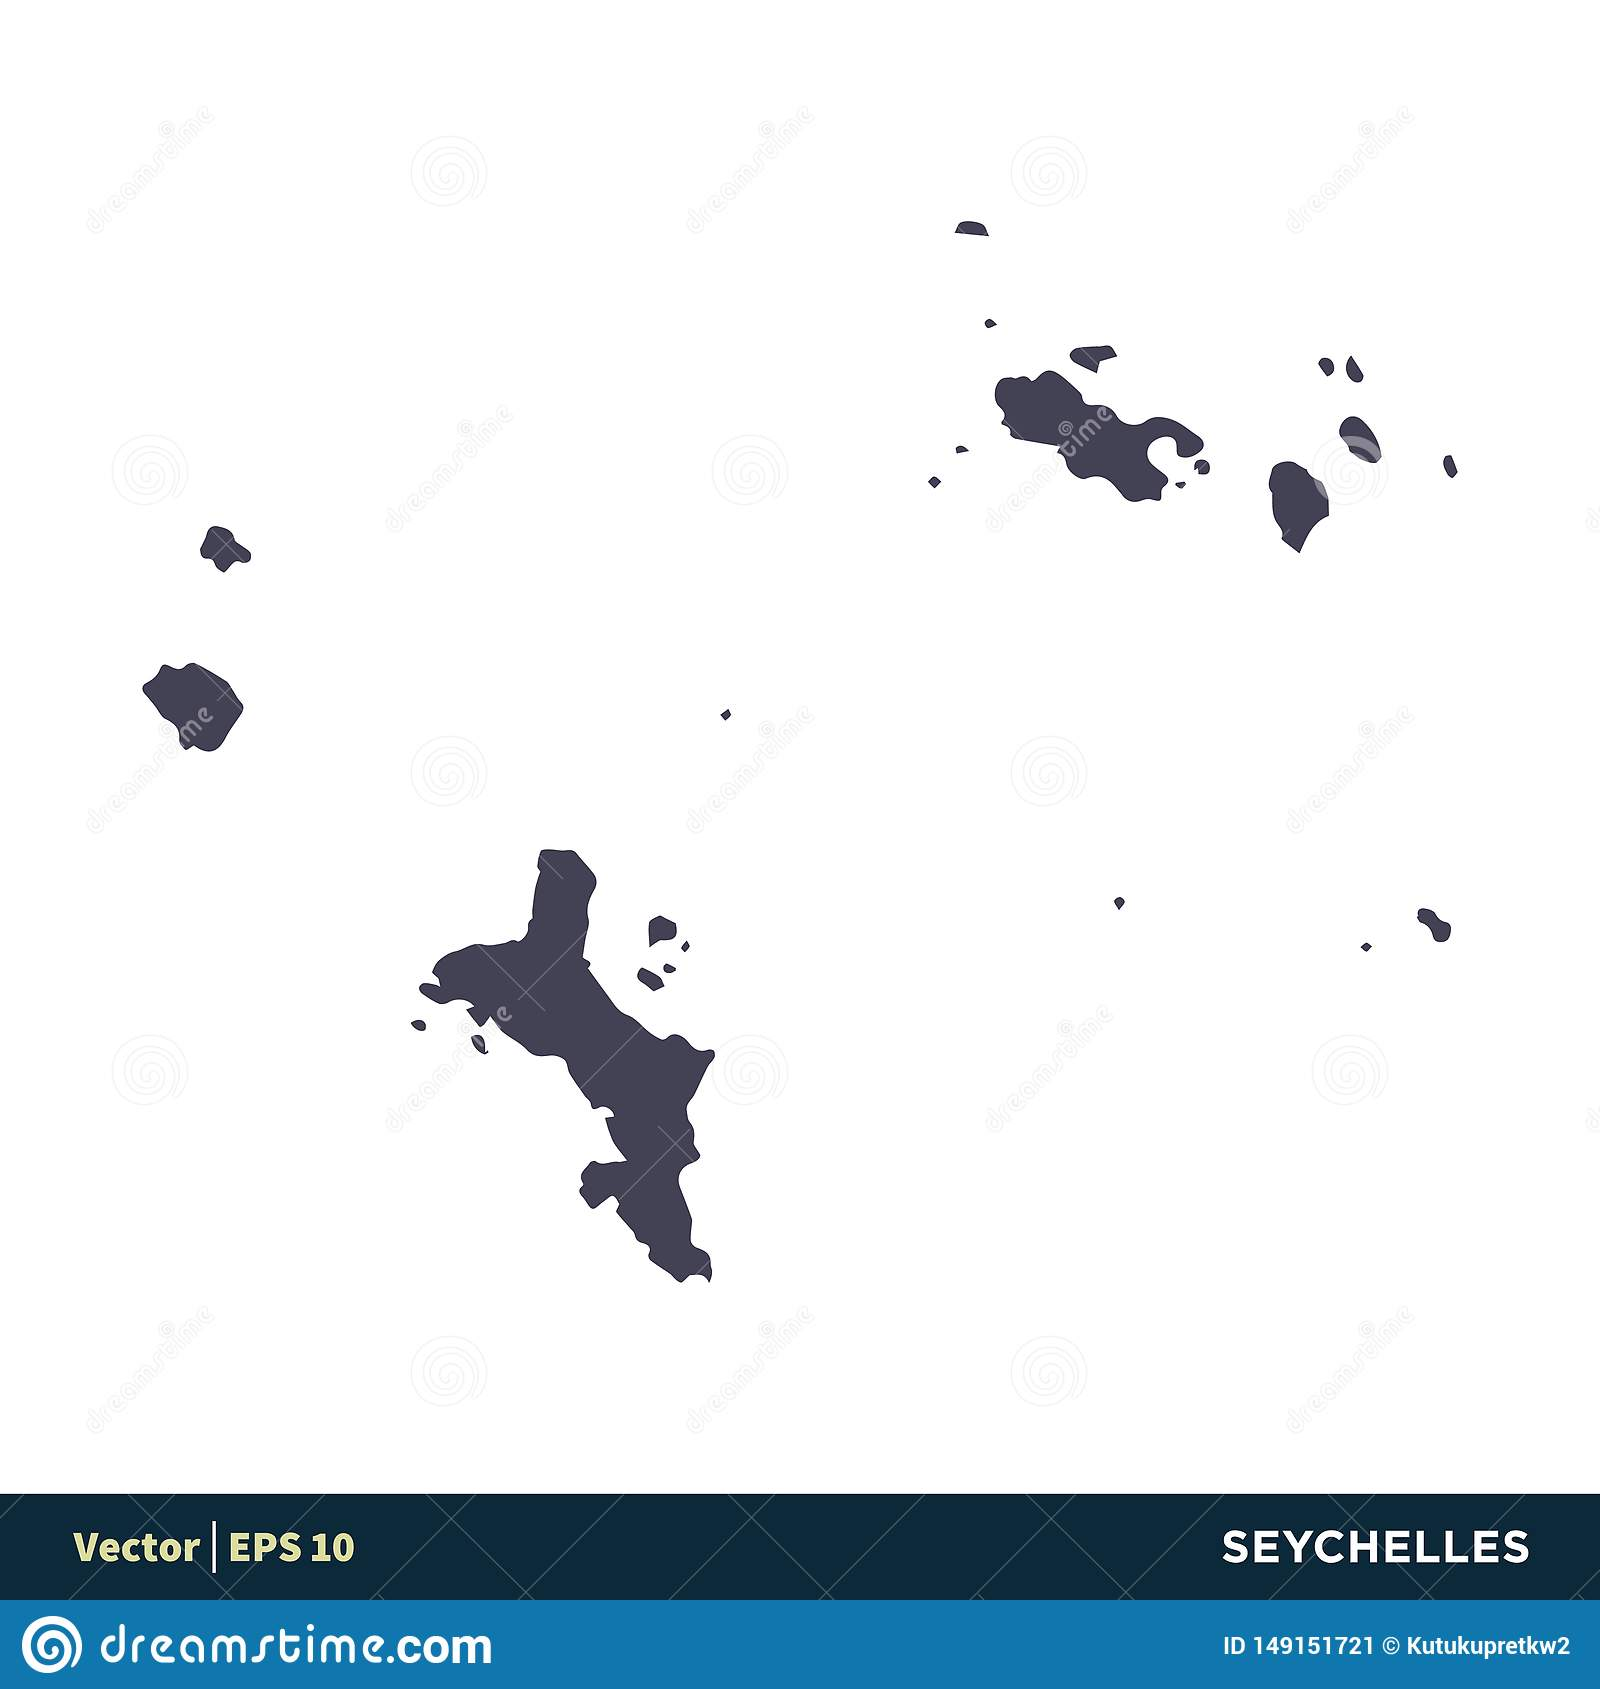 Seychelles - Africa Countries Map Icon Vector Logo Template Illustration Design. Vector EPS 10.